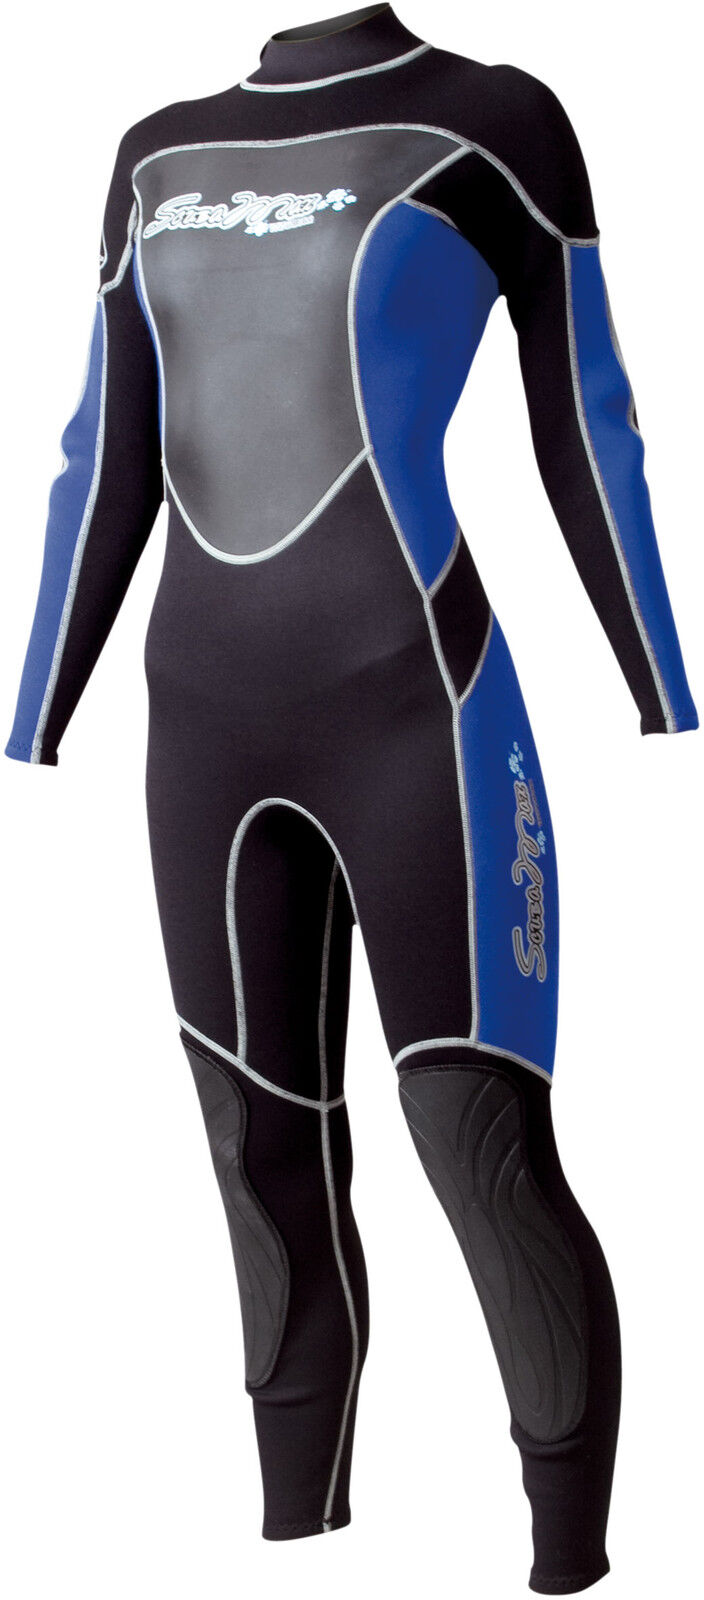 ScubaMax 3 2mm Women's Stretch WETSUIT Diving Surfing Water-Skiing Swimming 6